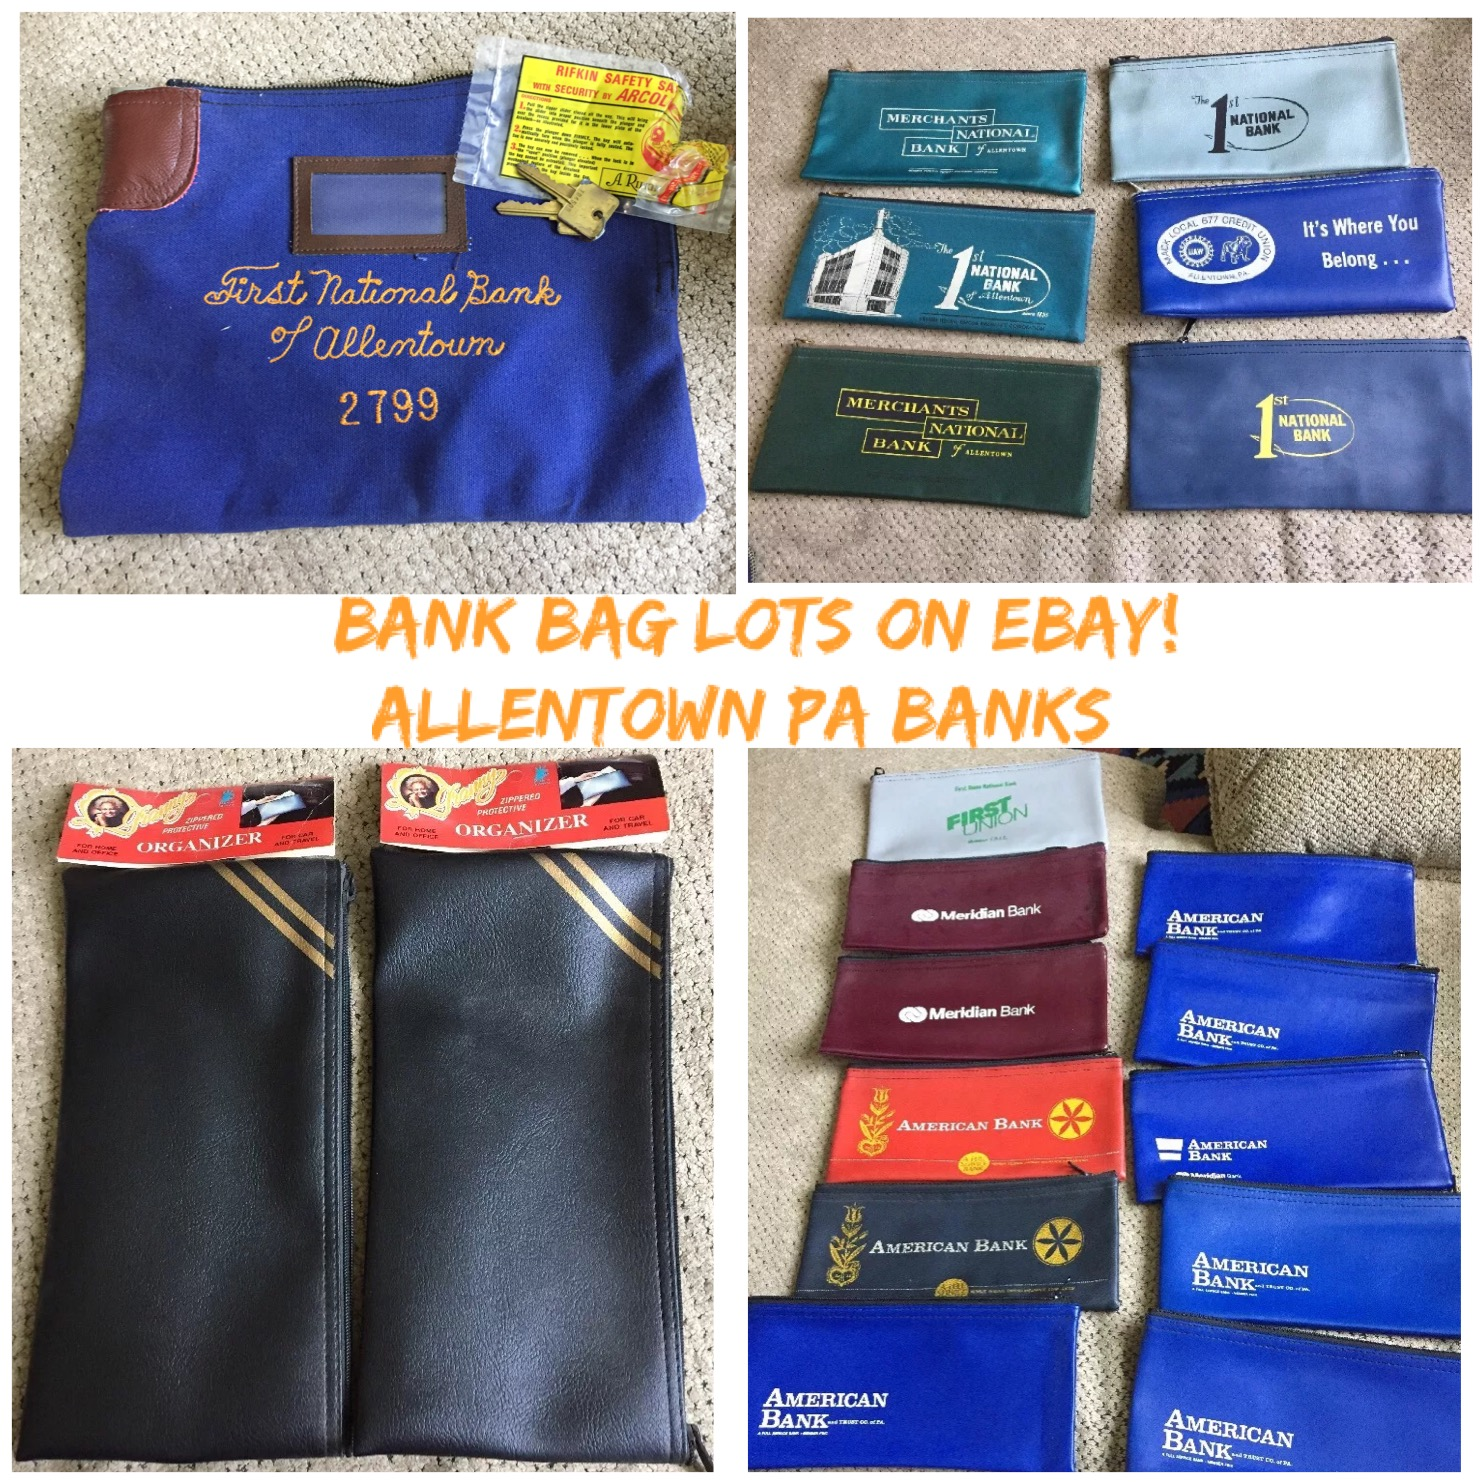 4 lots of bank bags up for grabs. Nice regional banking history here! And useful too!